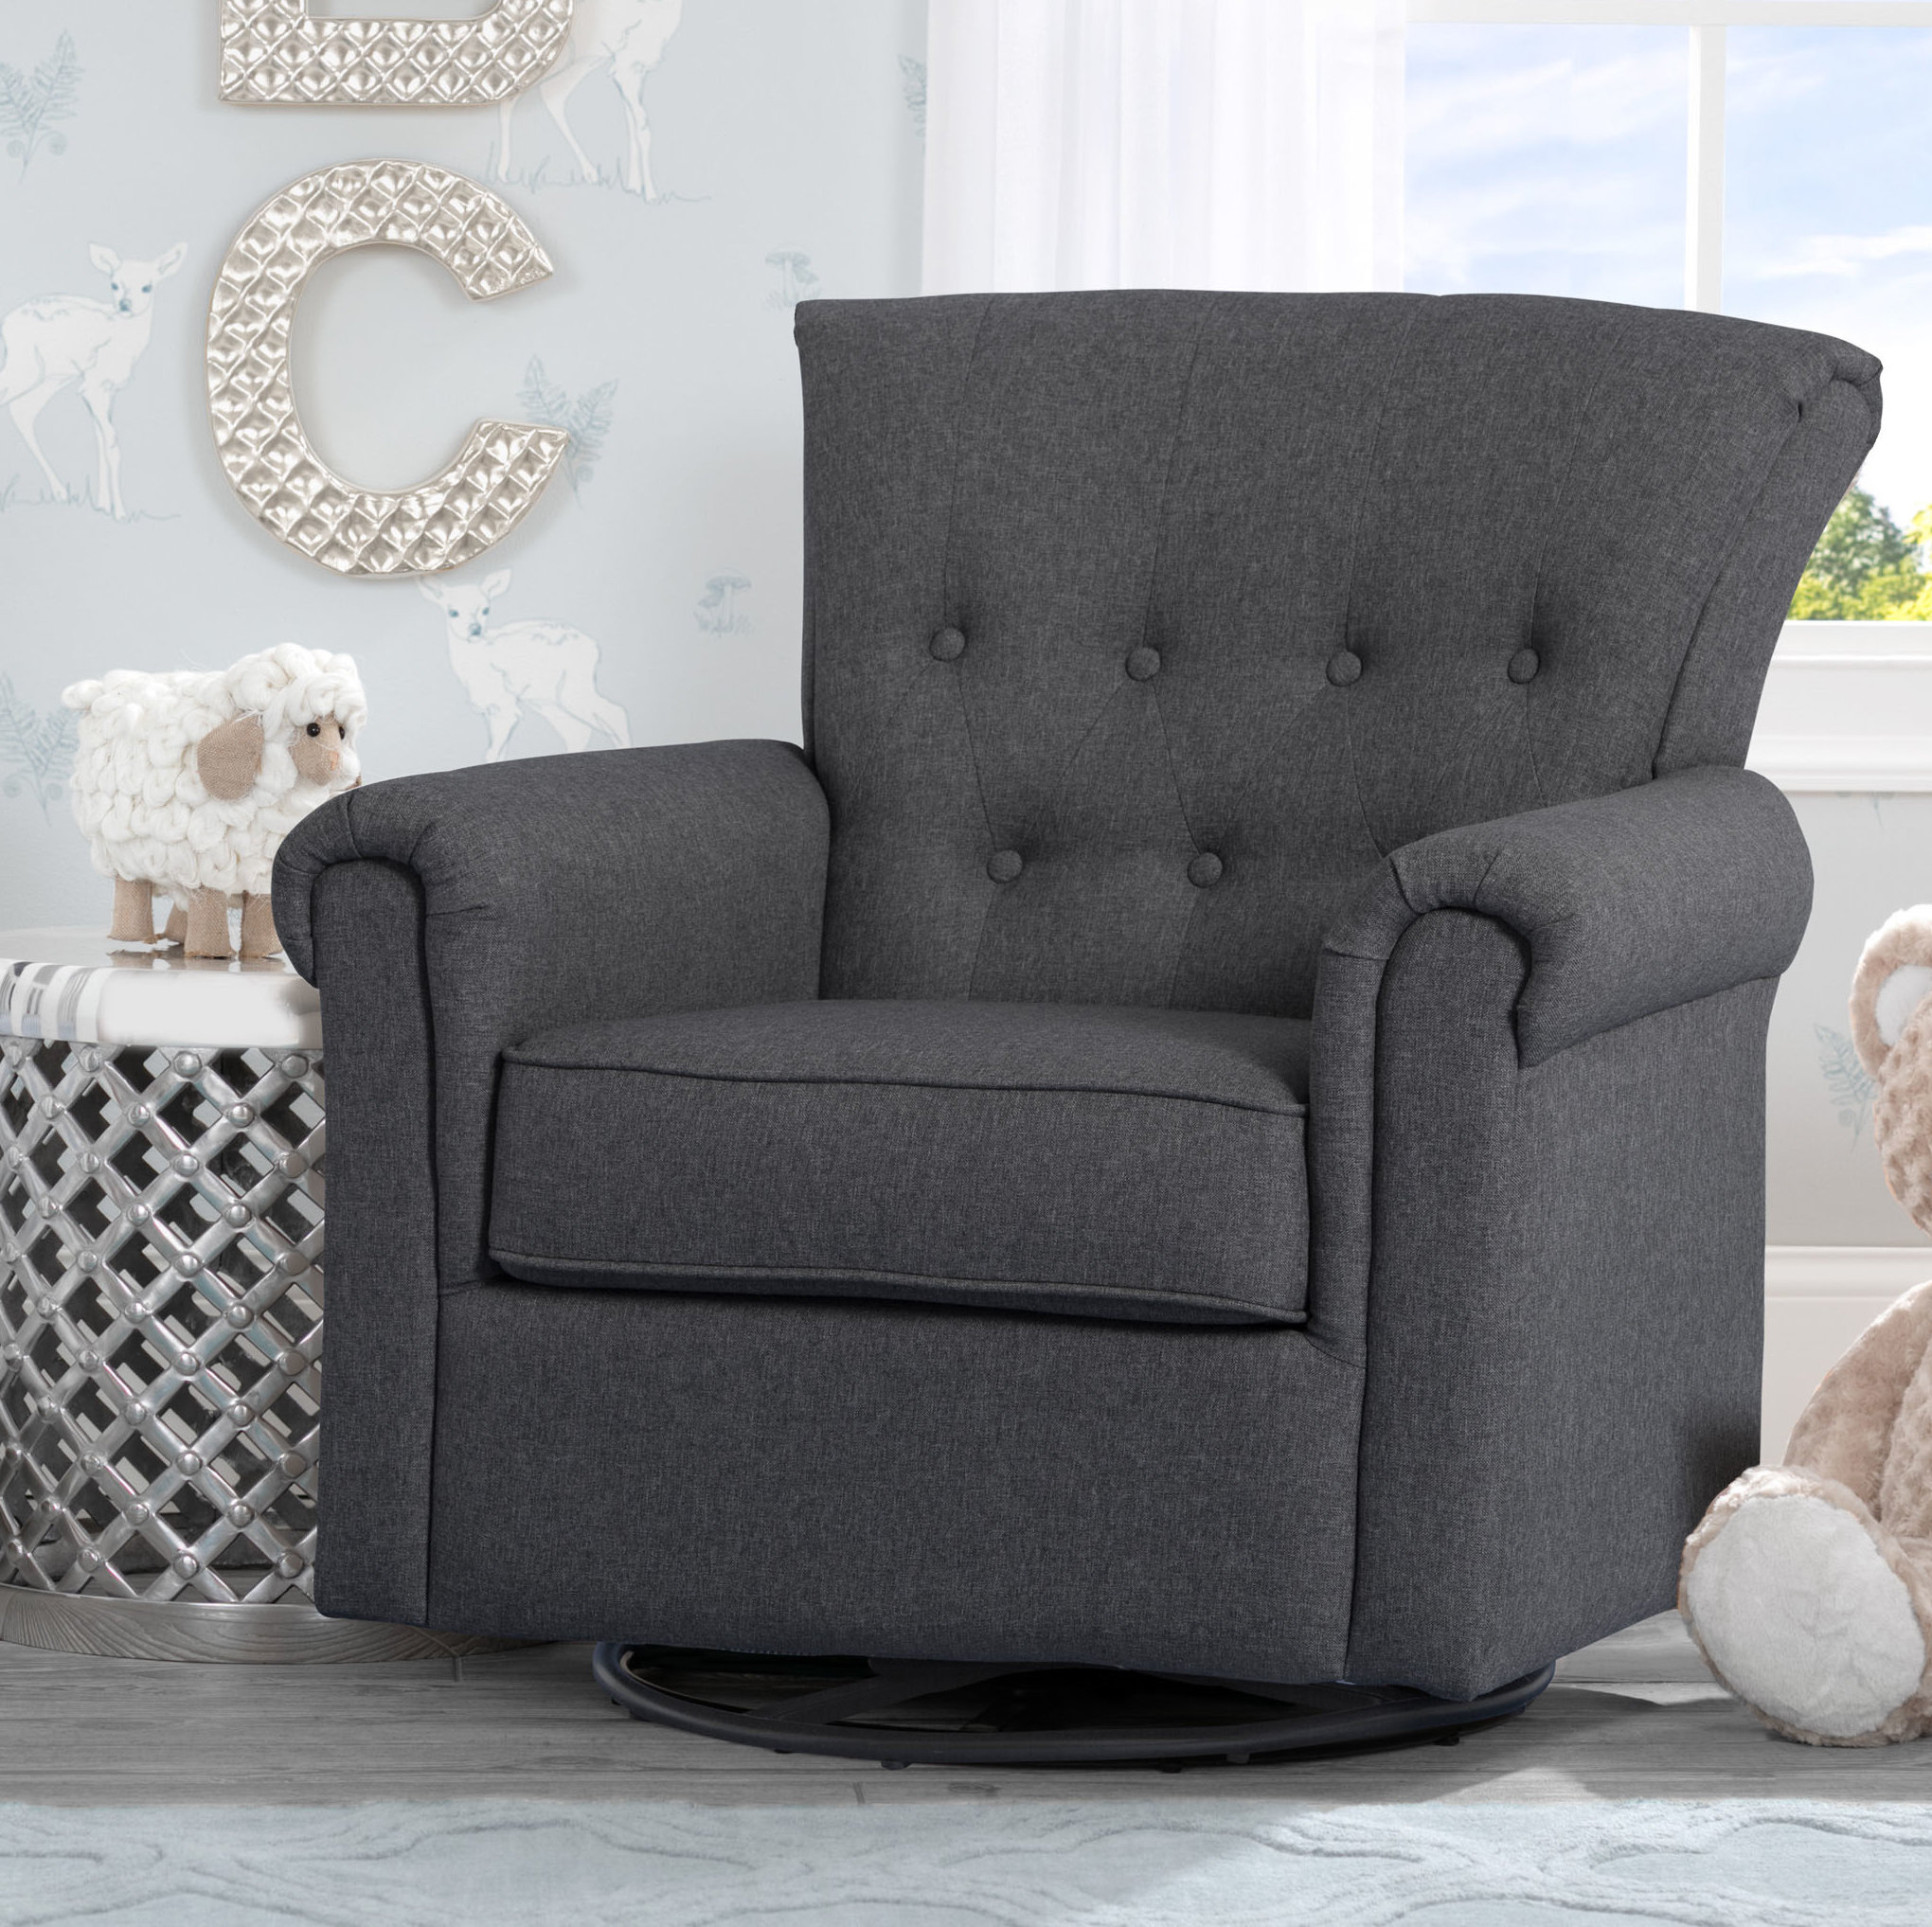 Delta Children Harper Nursery Swivel Glider & Reviews | Wayfair Regarding Dale Iii Polyurethane Swivel Glider Recliners (Image 12 of 25)